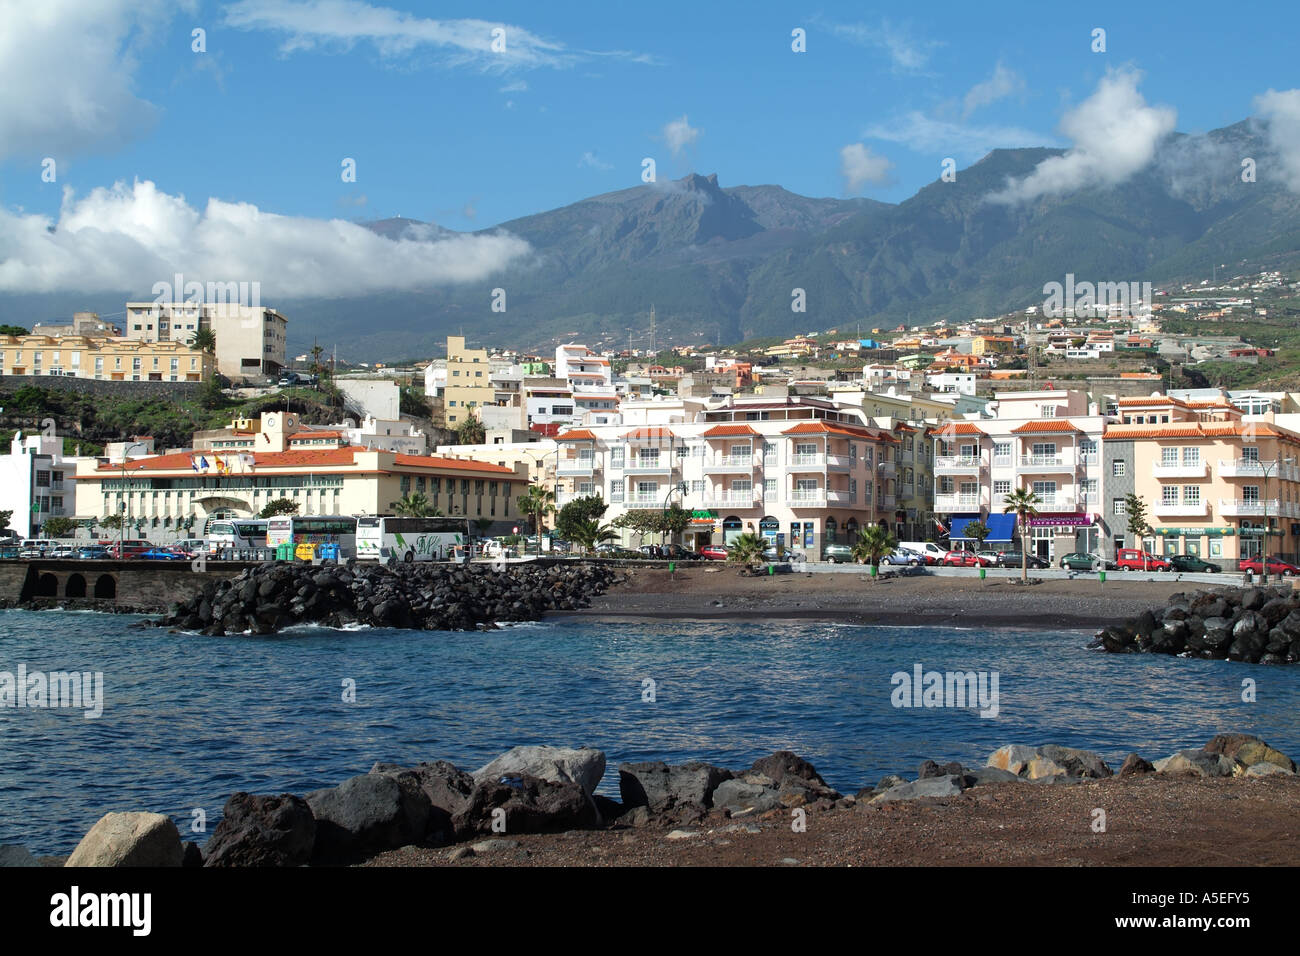 Candelaria a small seaside town on the east coast of for Small east coast beach towns